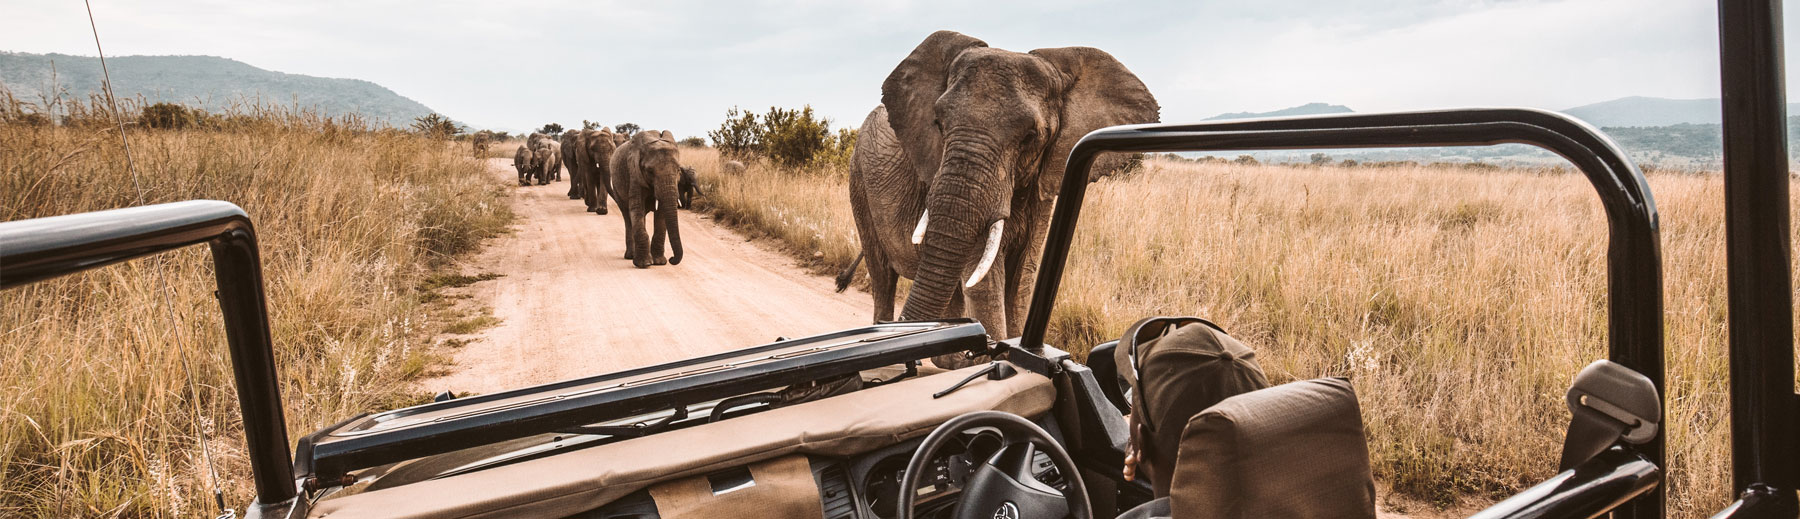 A close encounter with elephant on a game drive in Botswana